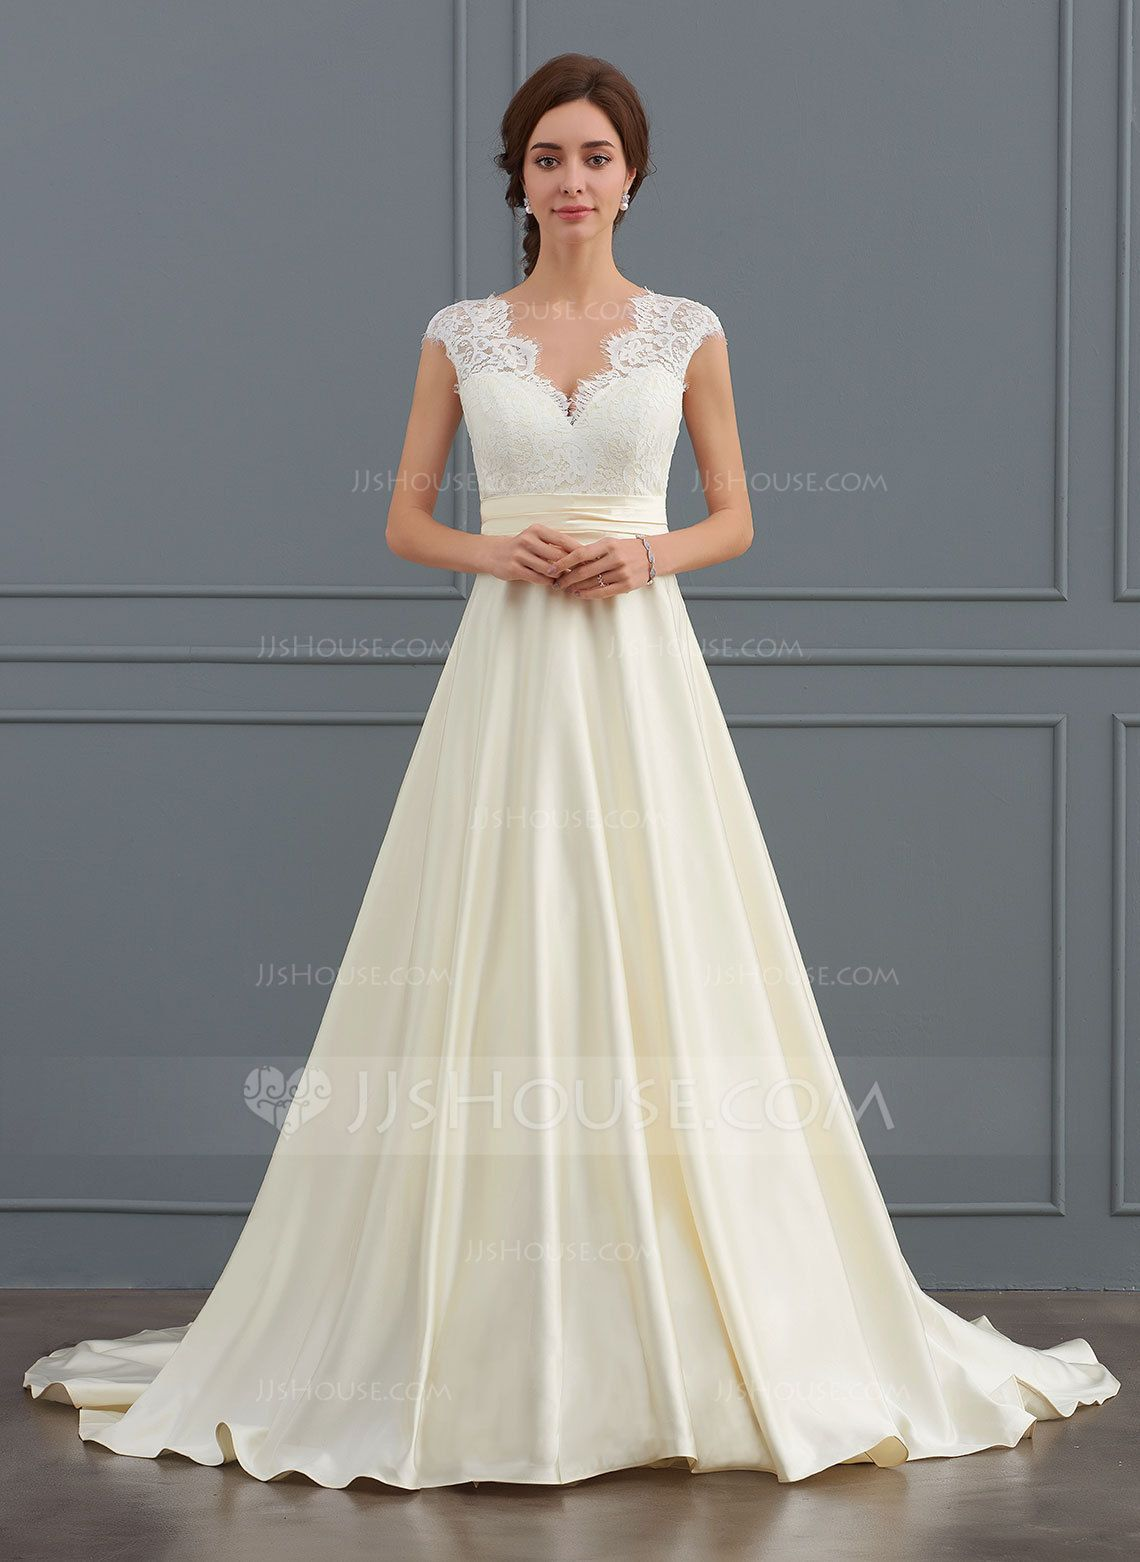 JJsHouse Ball-Gown V-neck Court Train Satin Wedding Dress With Ruffle